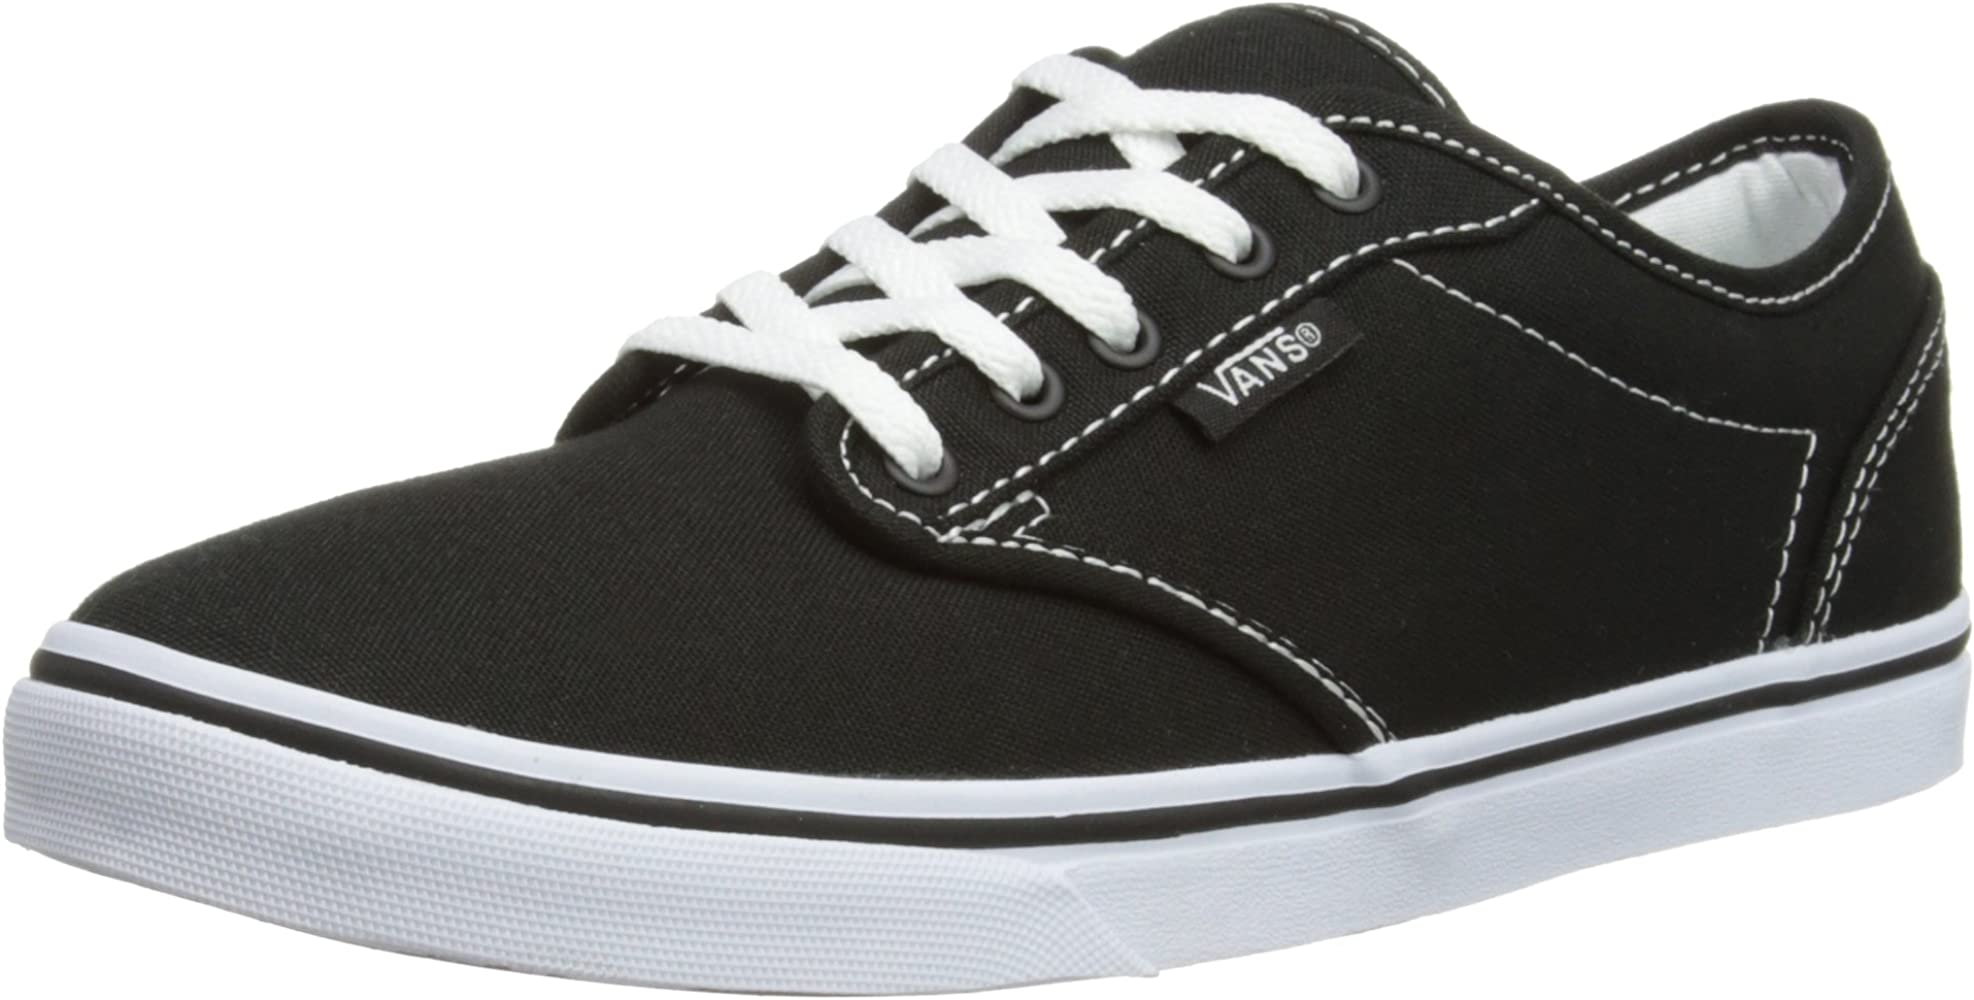 Vans ATWOOD LOW Damen Sneakers, Schwarz ((Canvas)Blk/Wht 187), 35 EU ...